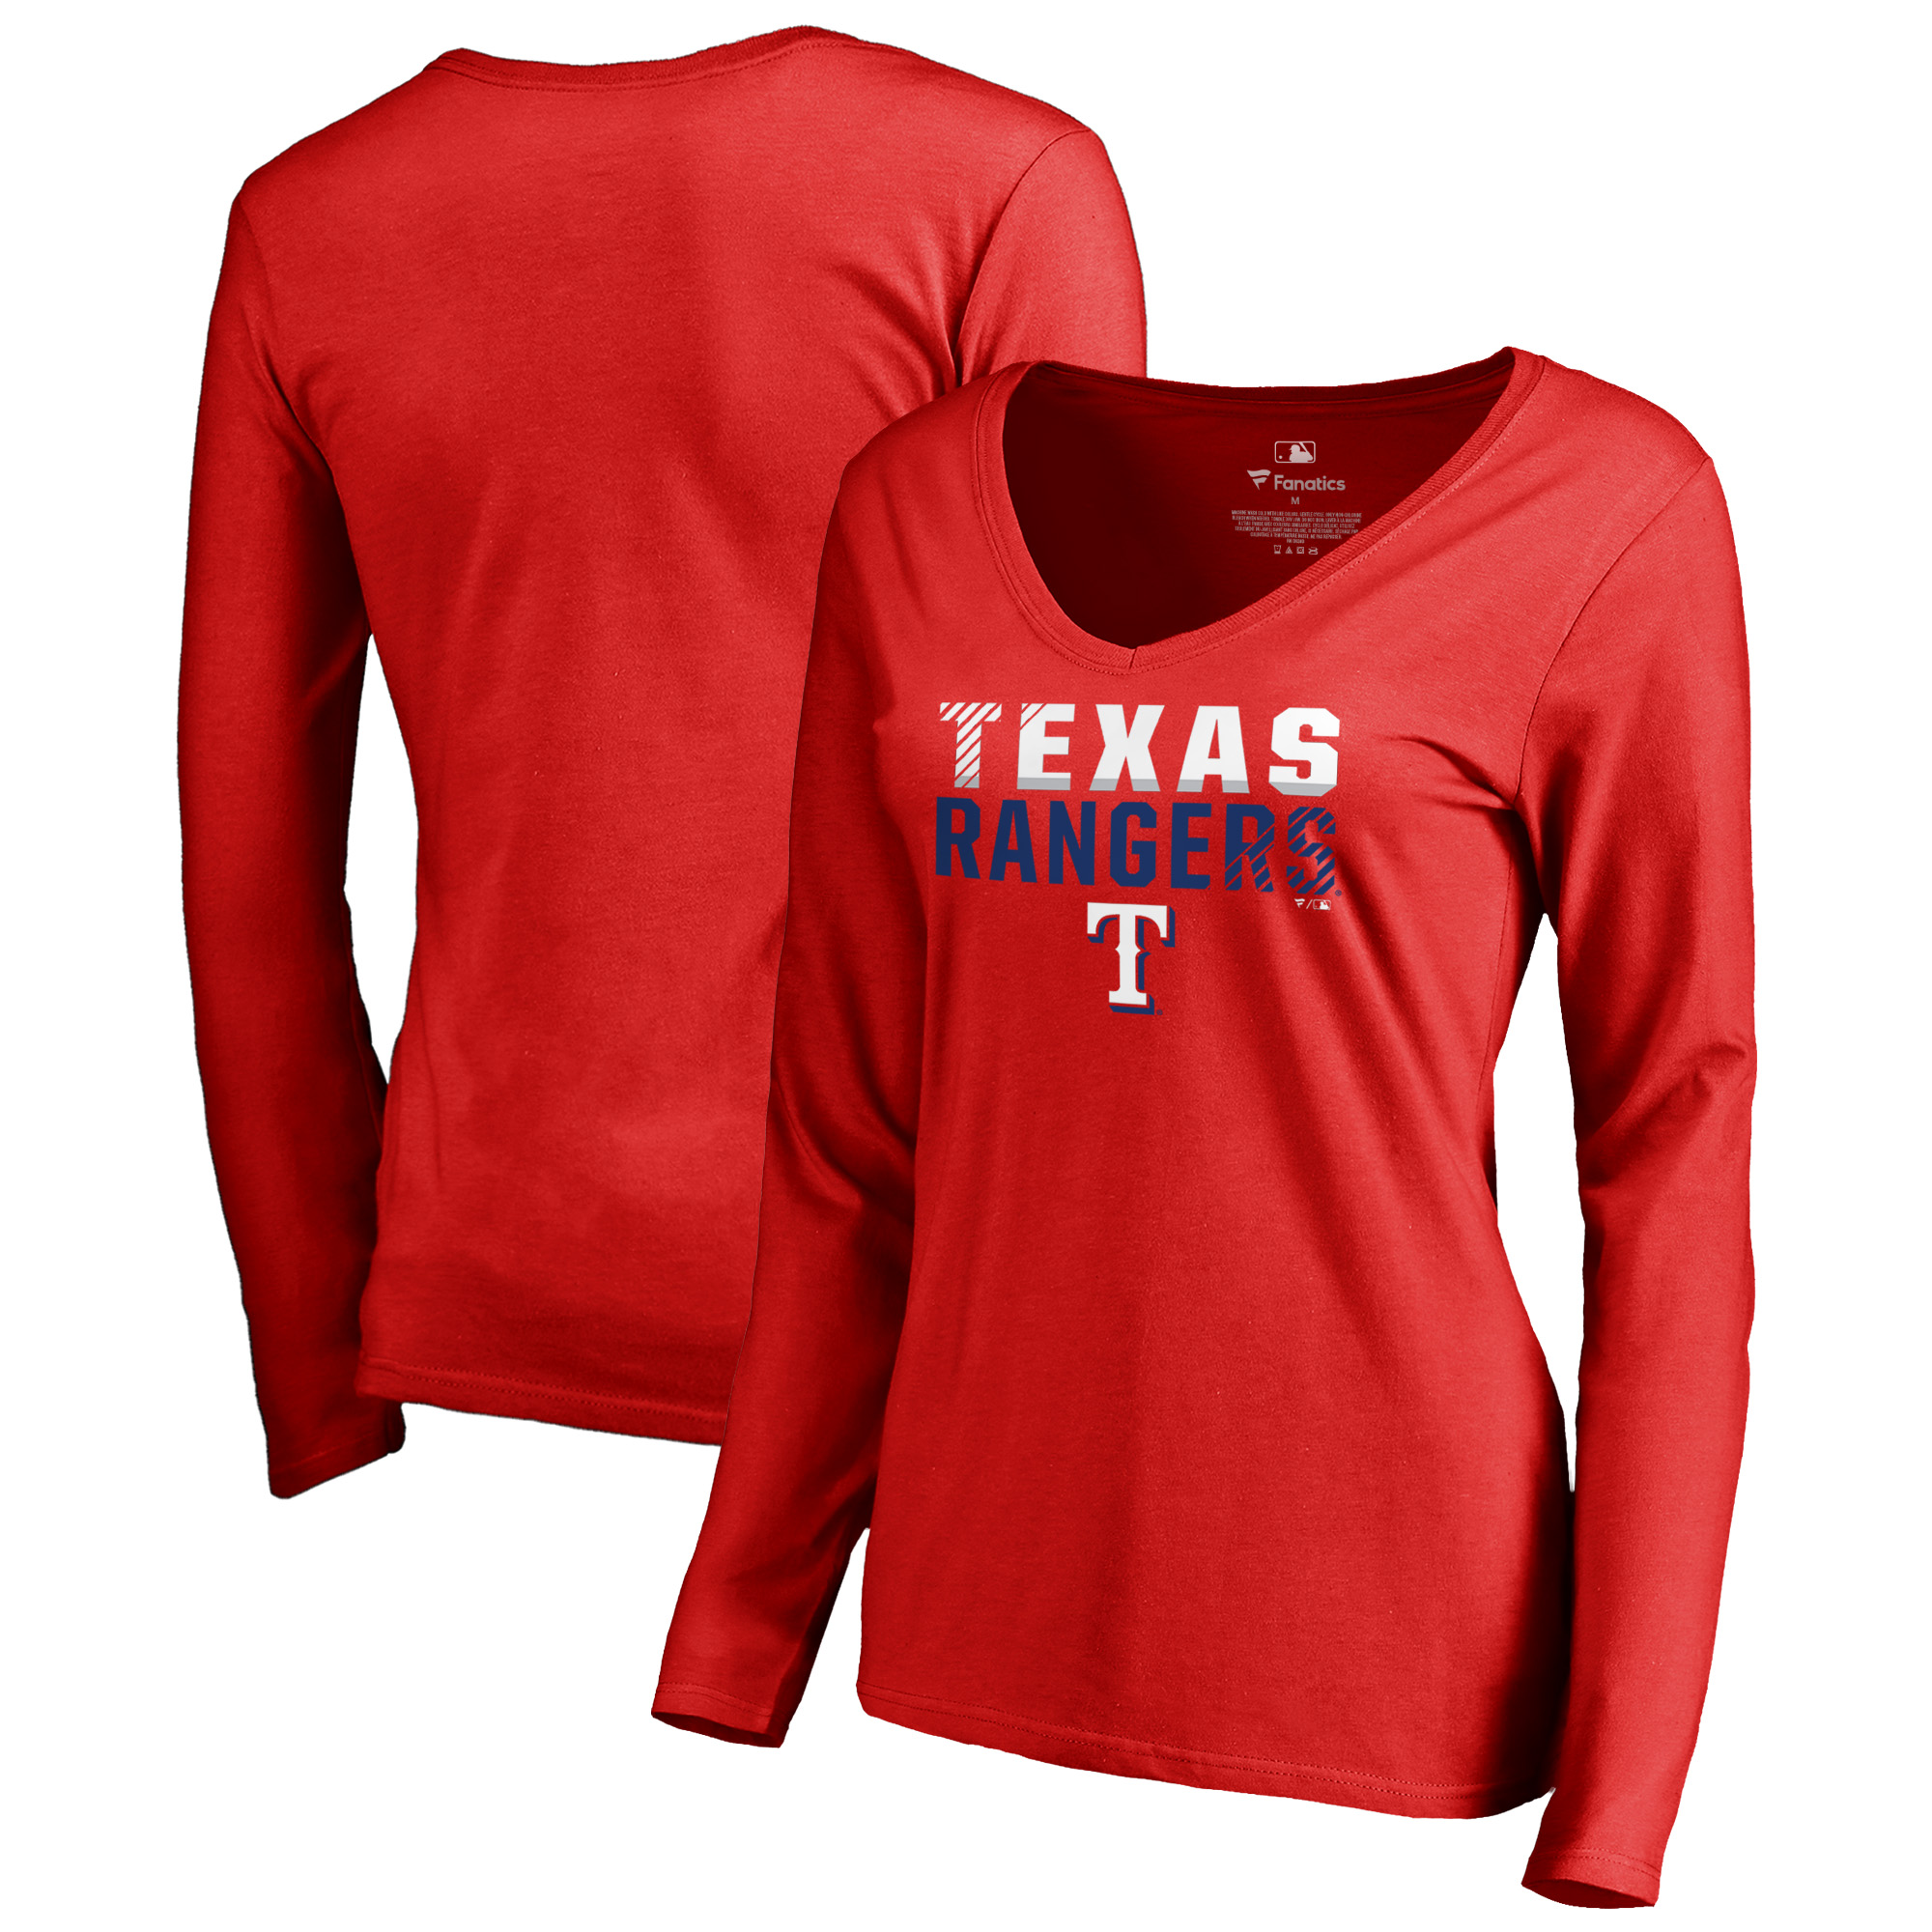 Texas Rangers Fanatics Branded Women's Fade Out V-Neck Long Sleeve T-Shirt - Red